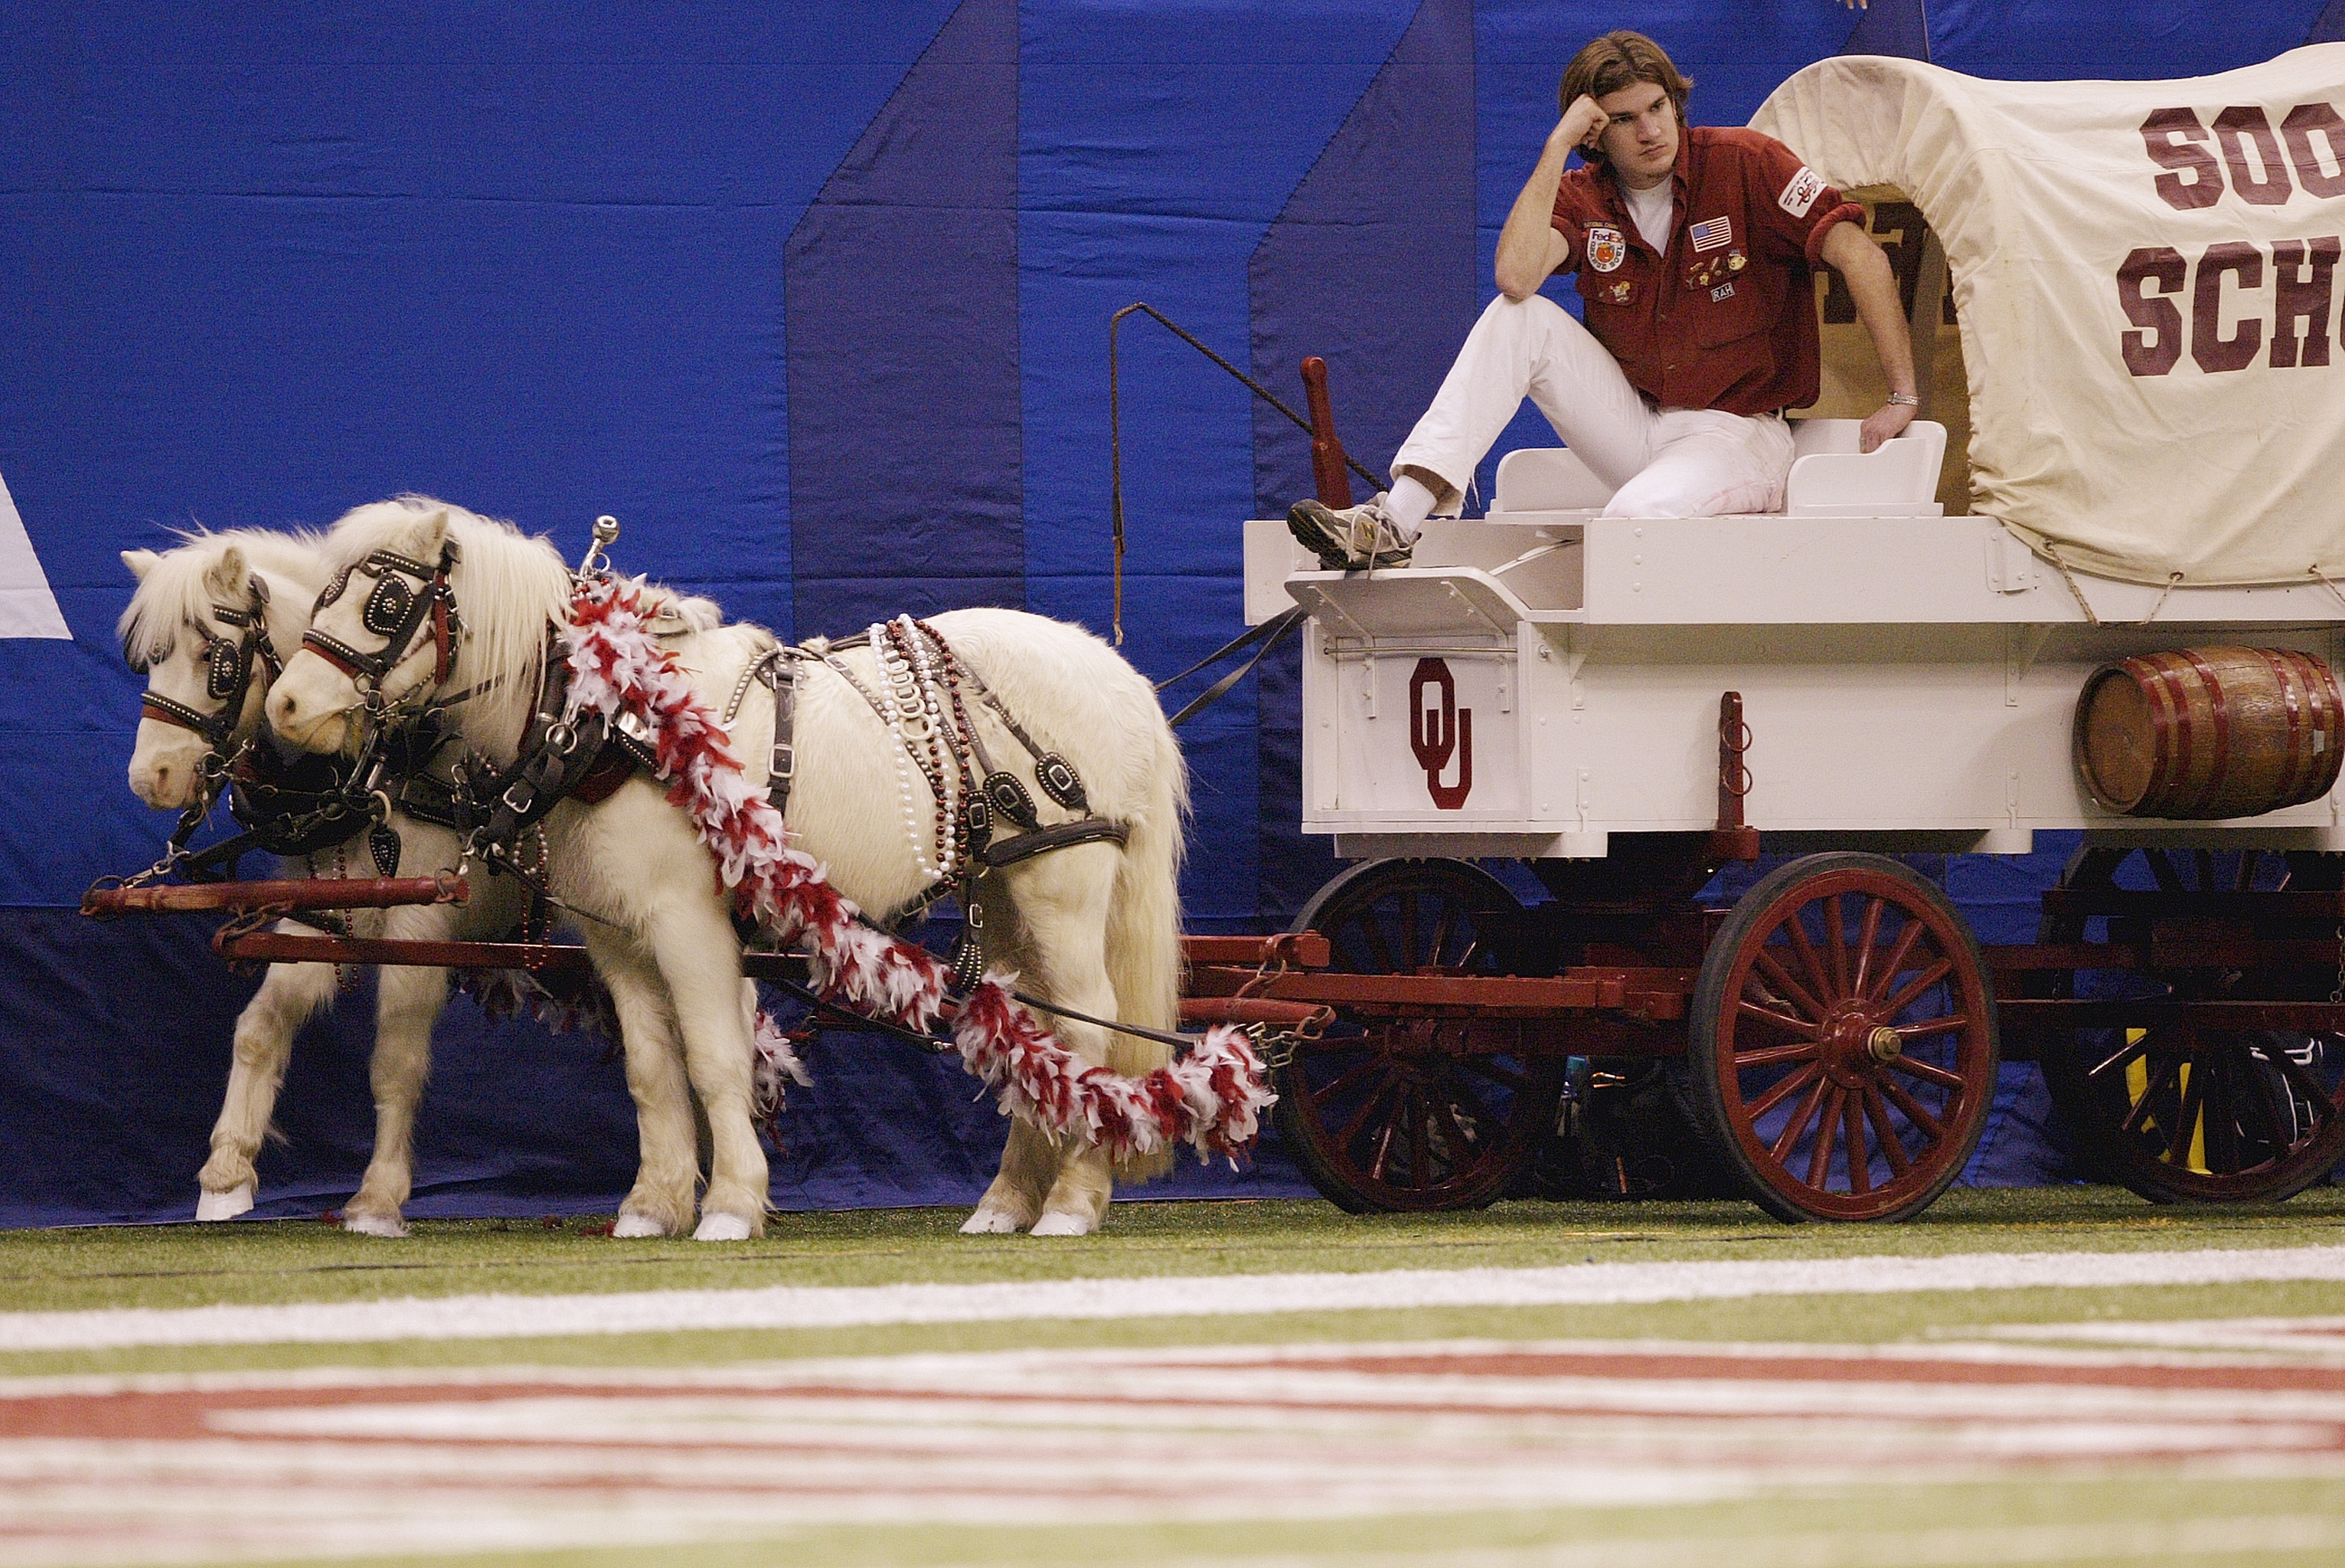 NEW ORLEANS - JANUARY 4:  The Sooner Schooner, powered by matching white ponies named Boomer and Sooner, on the sideline during the Nokia Sugar Bowl National Championship between the Oklahoma Sooners and the Louisiana State Tigers on January 4, 2004 at th